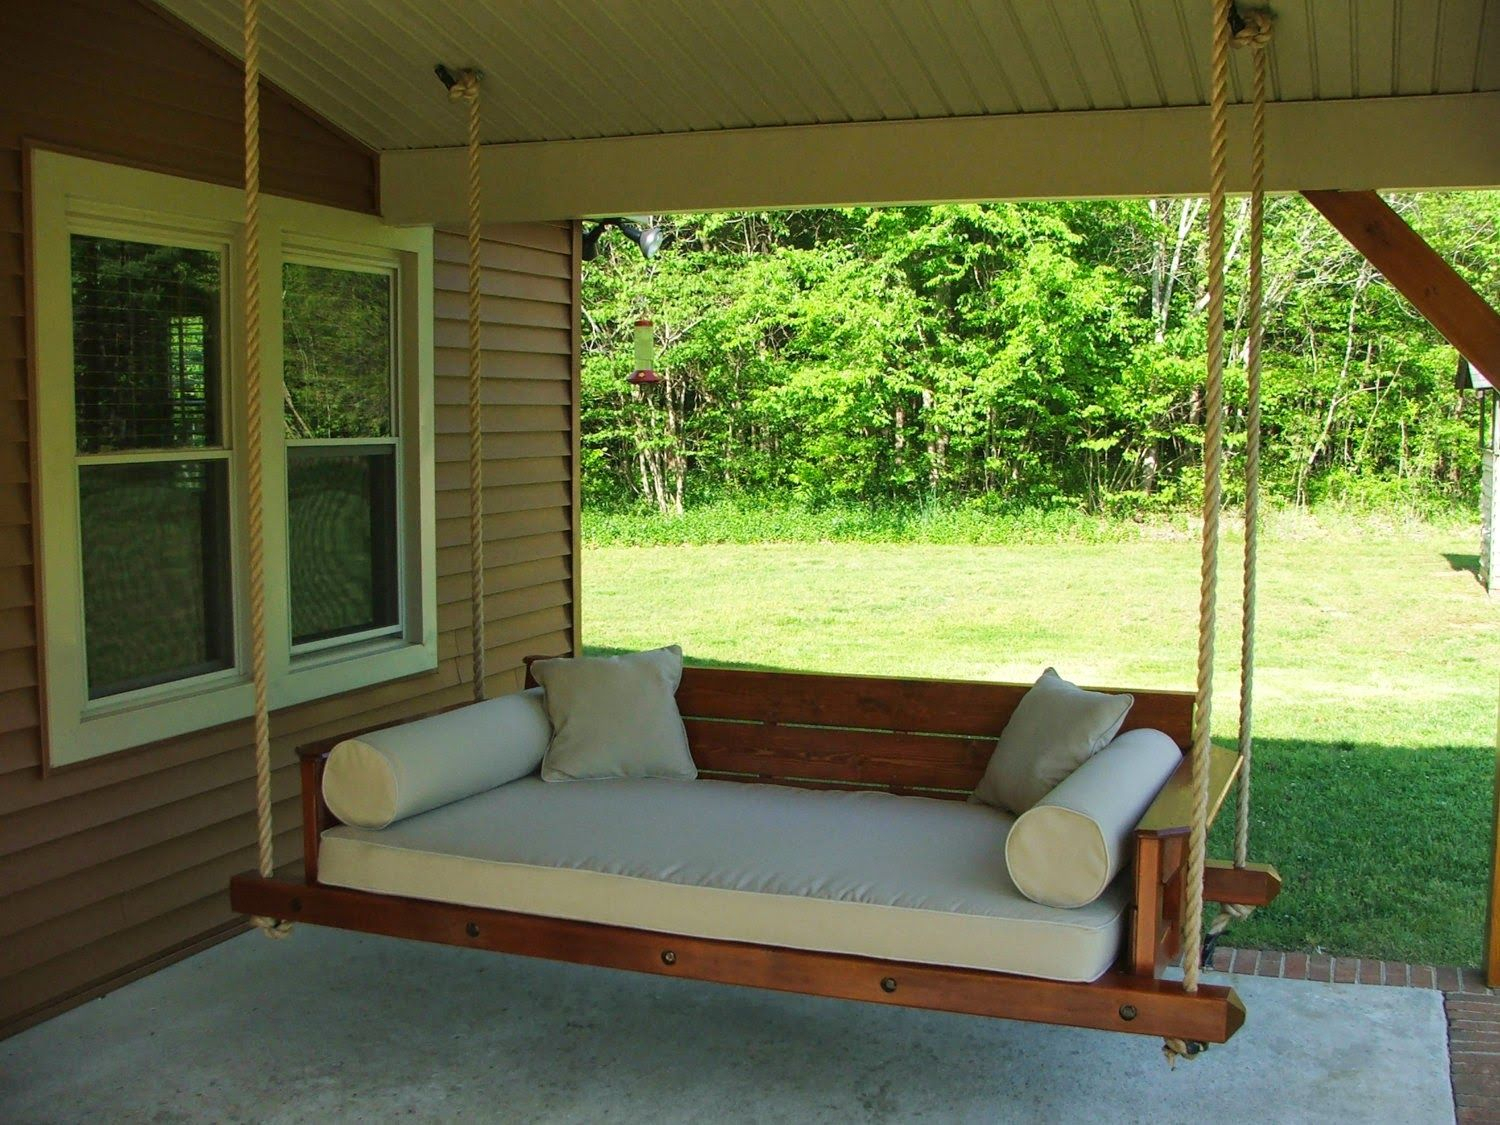 Outdoor Swing Bed Plans | Porch Bed, Modern Porch Swings With Regard To Daybed Porch Swings With Stand (View 5 of 25)